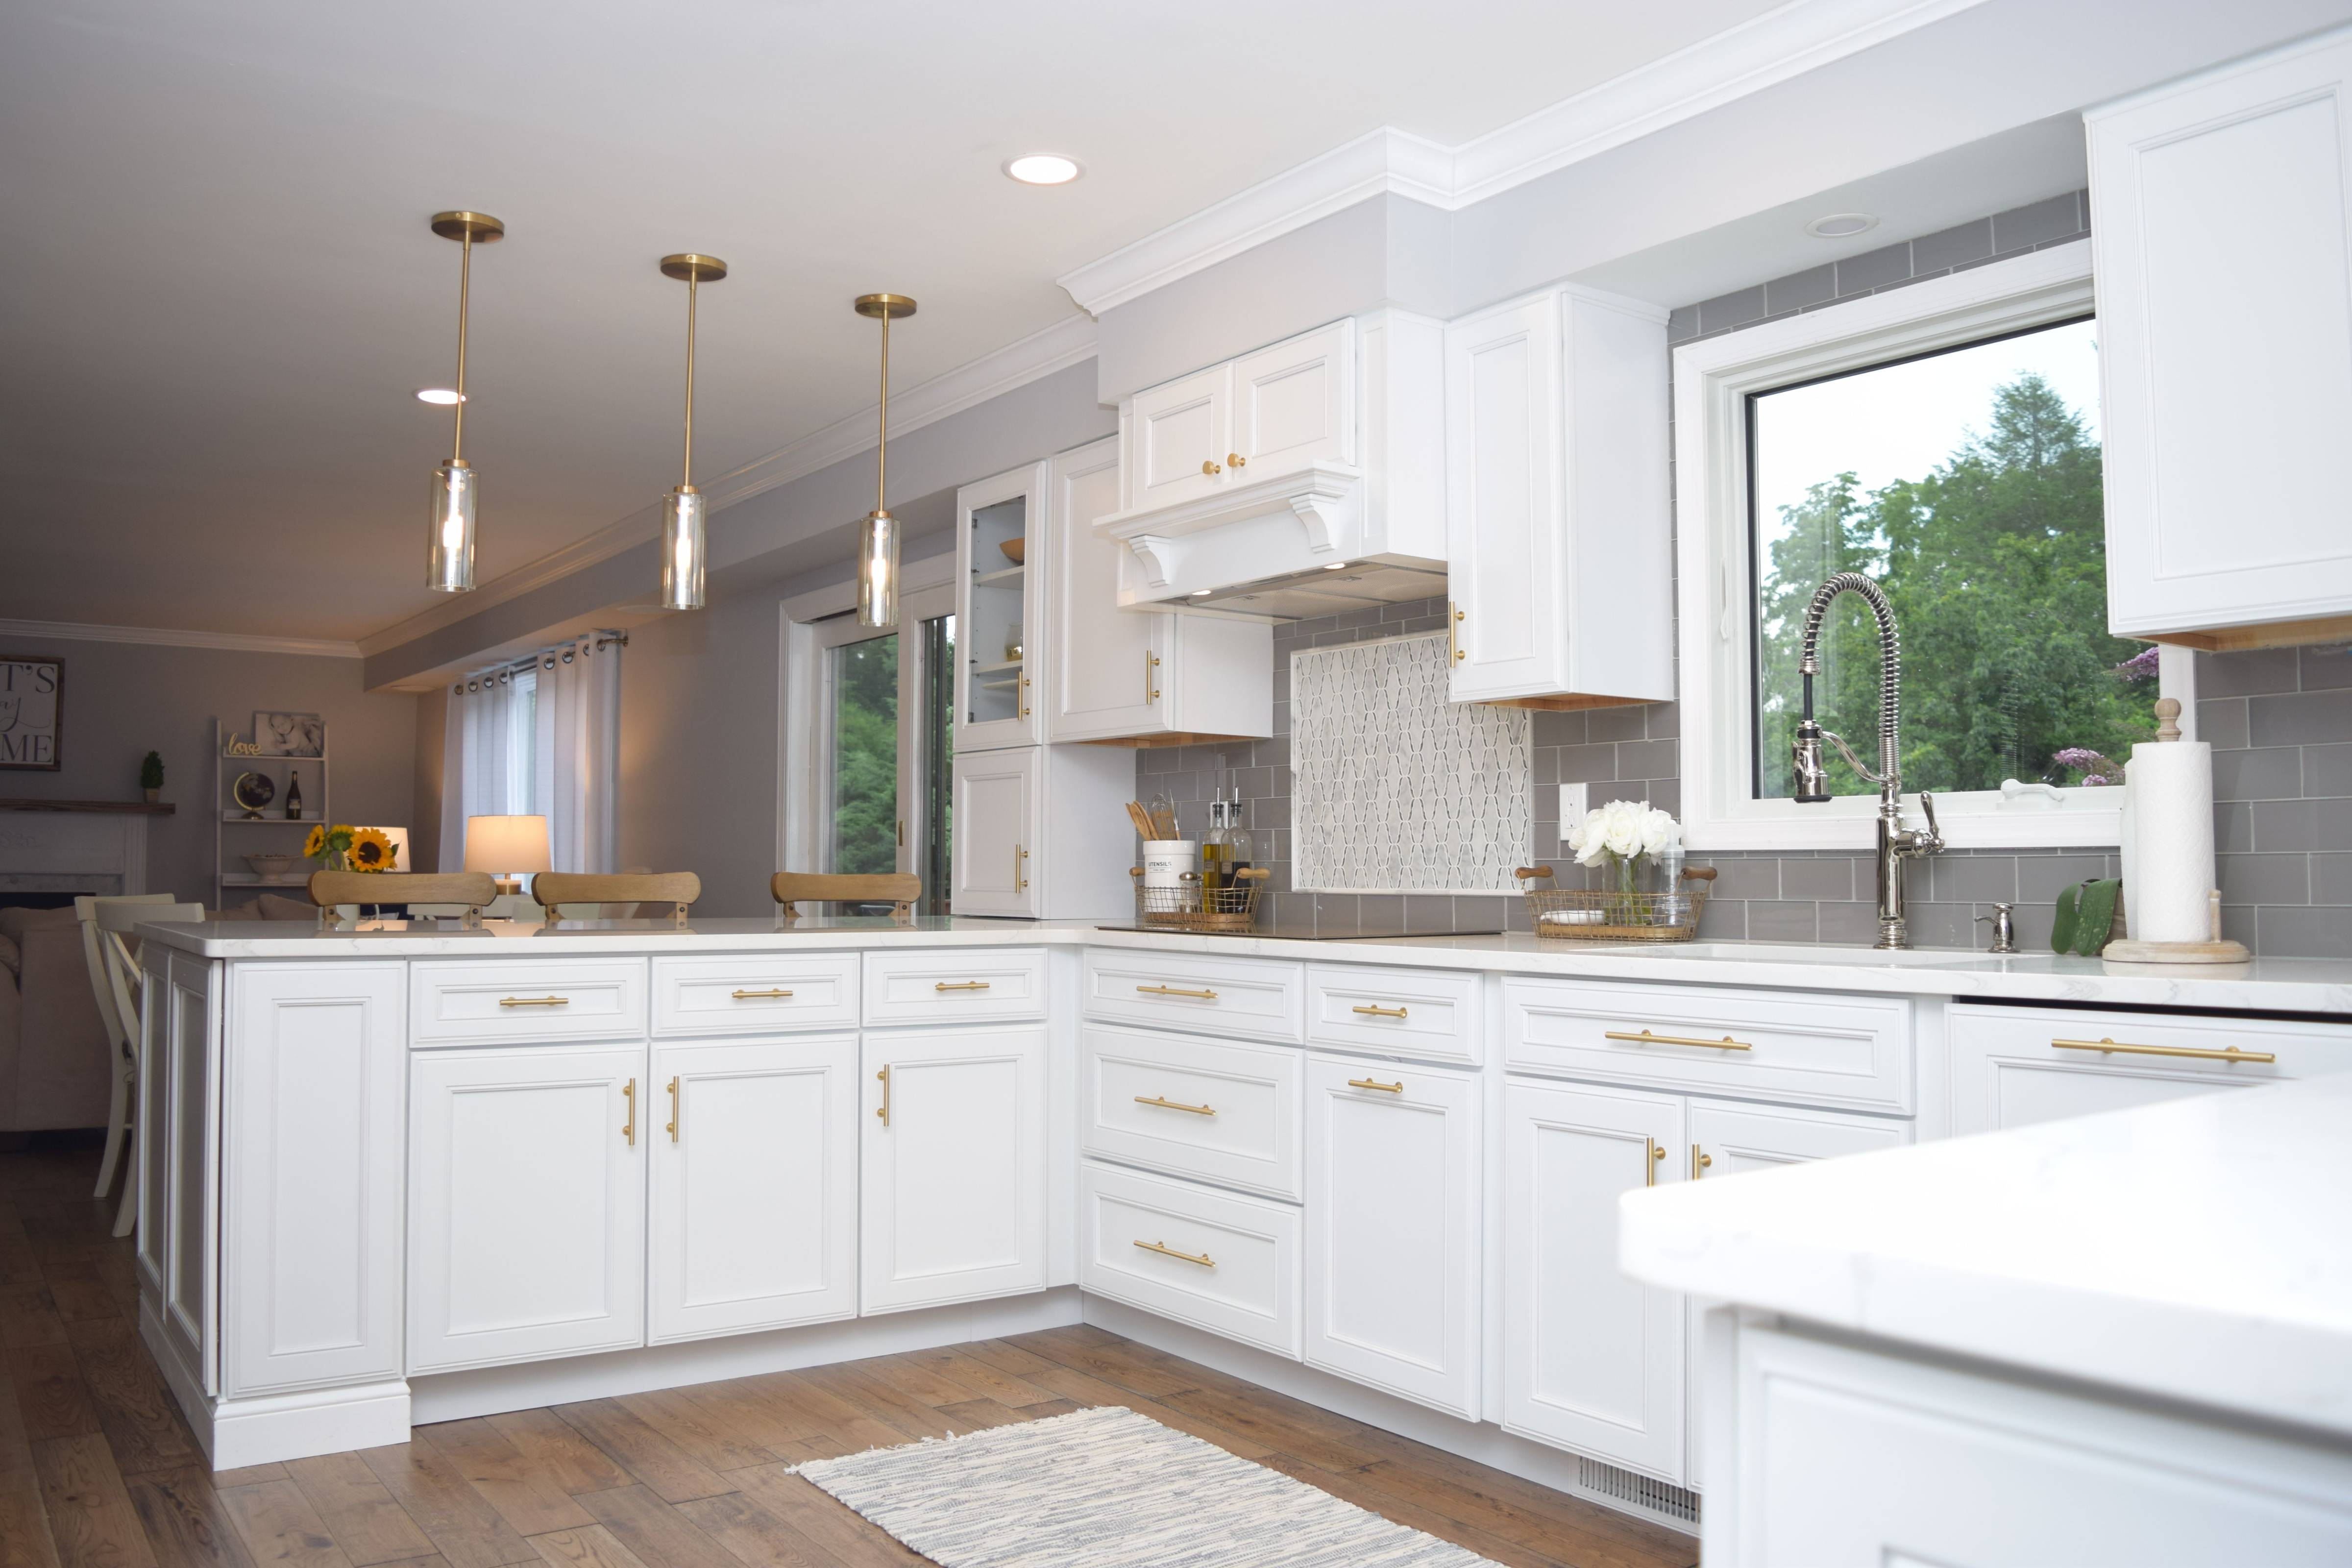 Warm with Gold Accents in the Kitchen